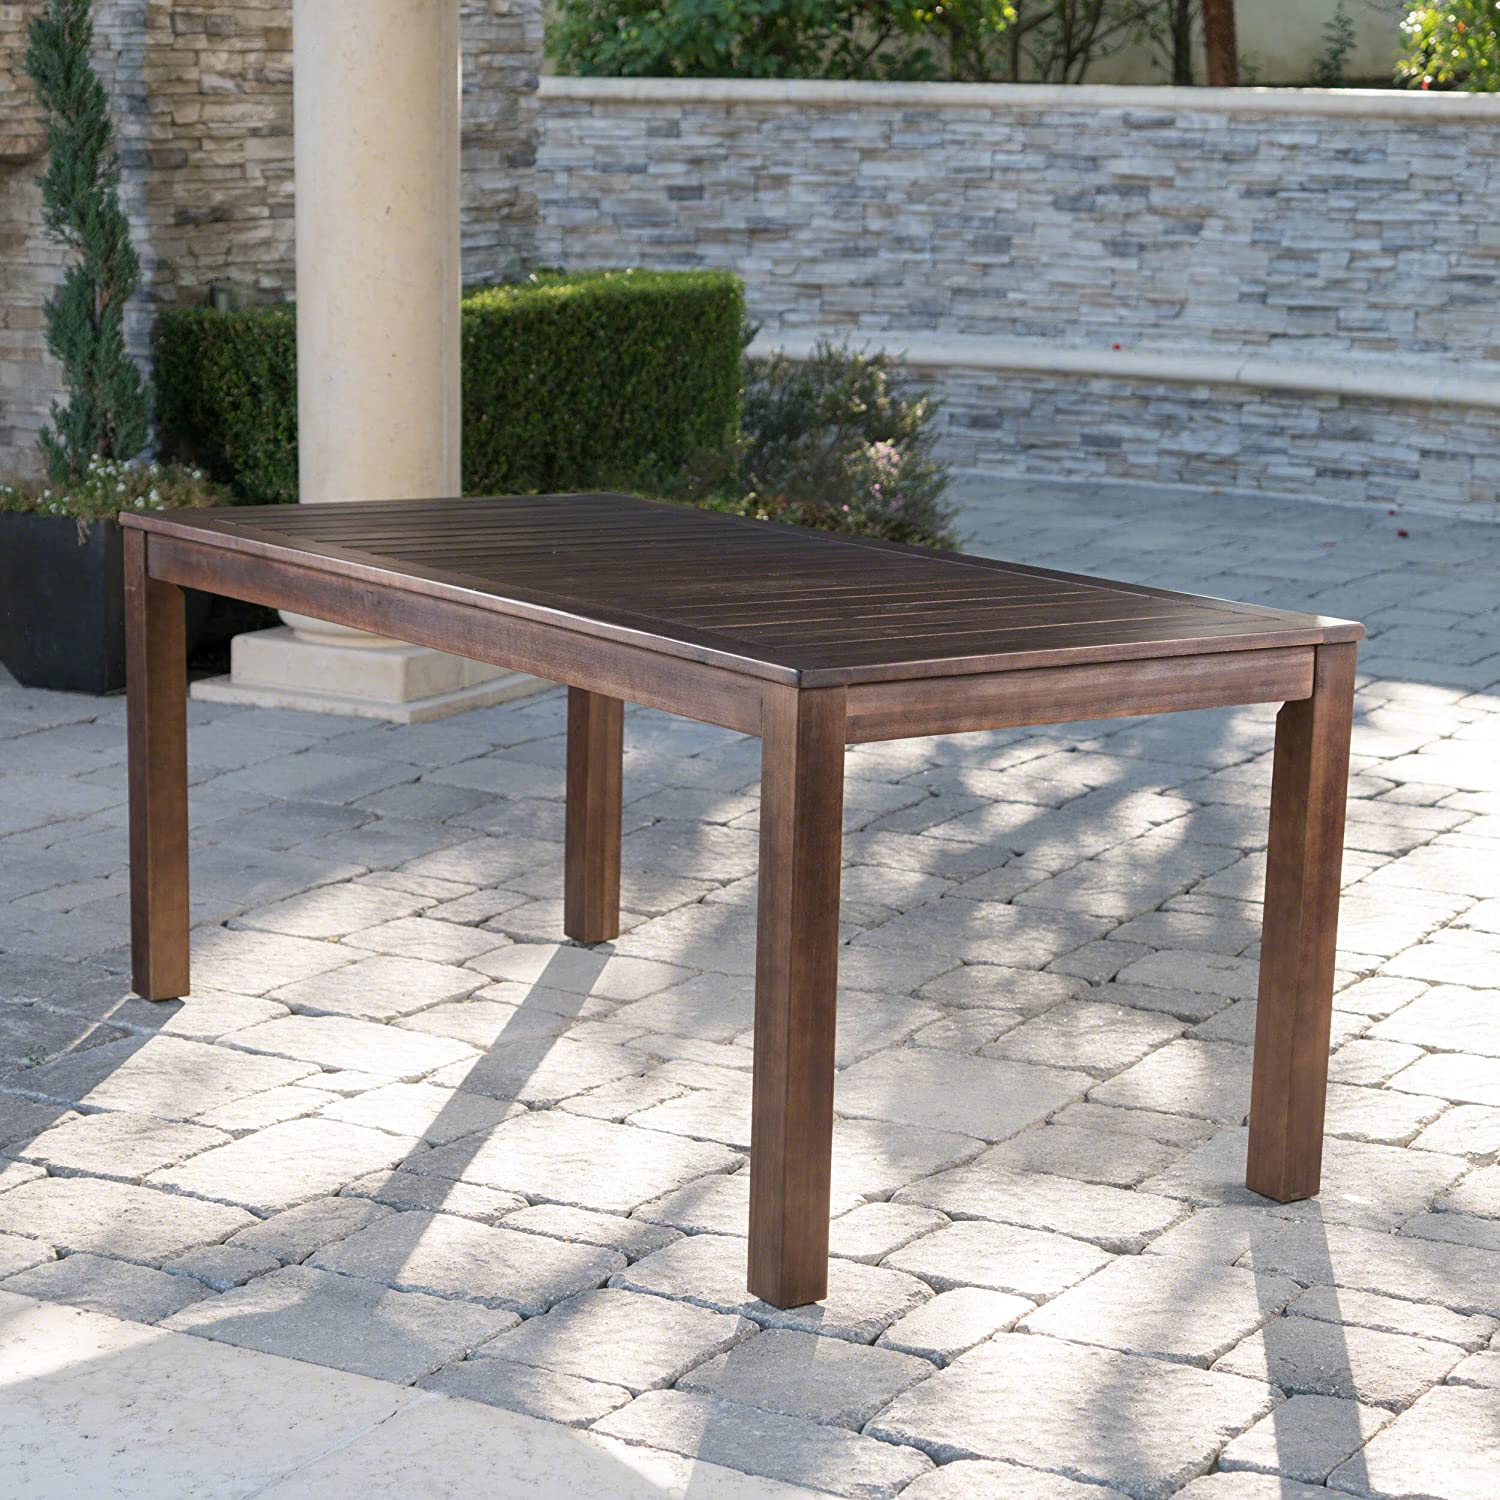 Christopher Knight Home Marin Dark Brown Acacia Wood Outdoor Dining Table